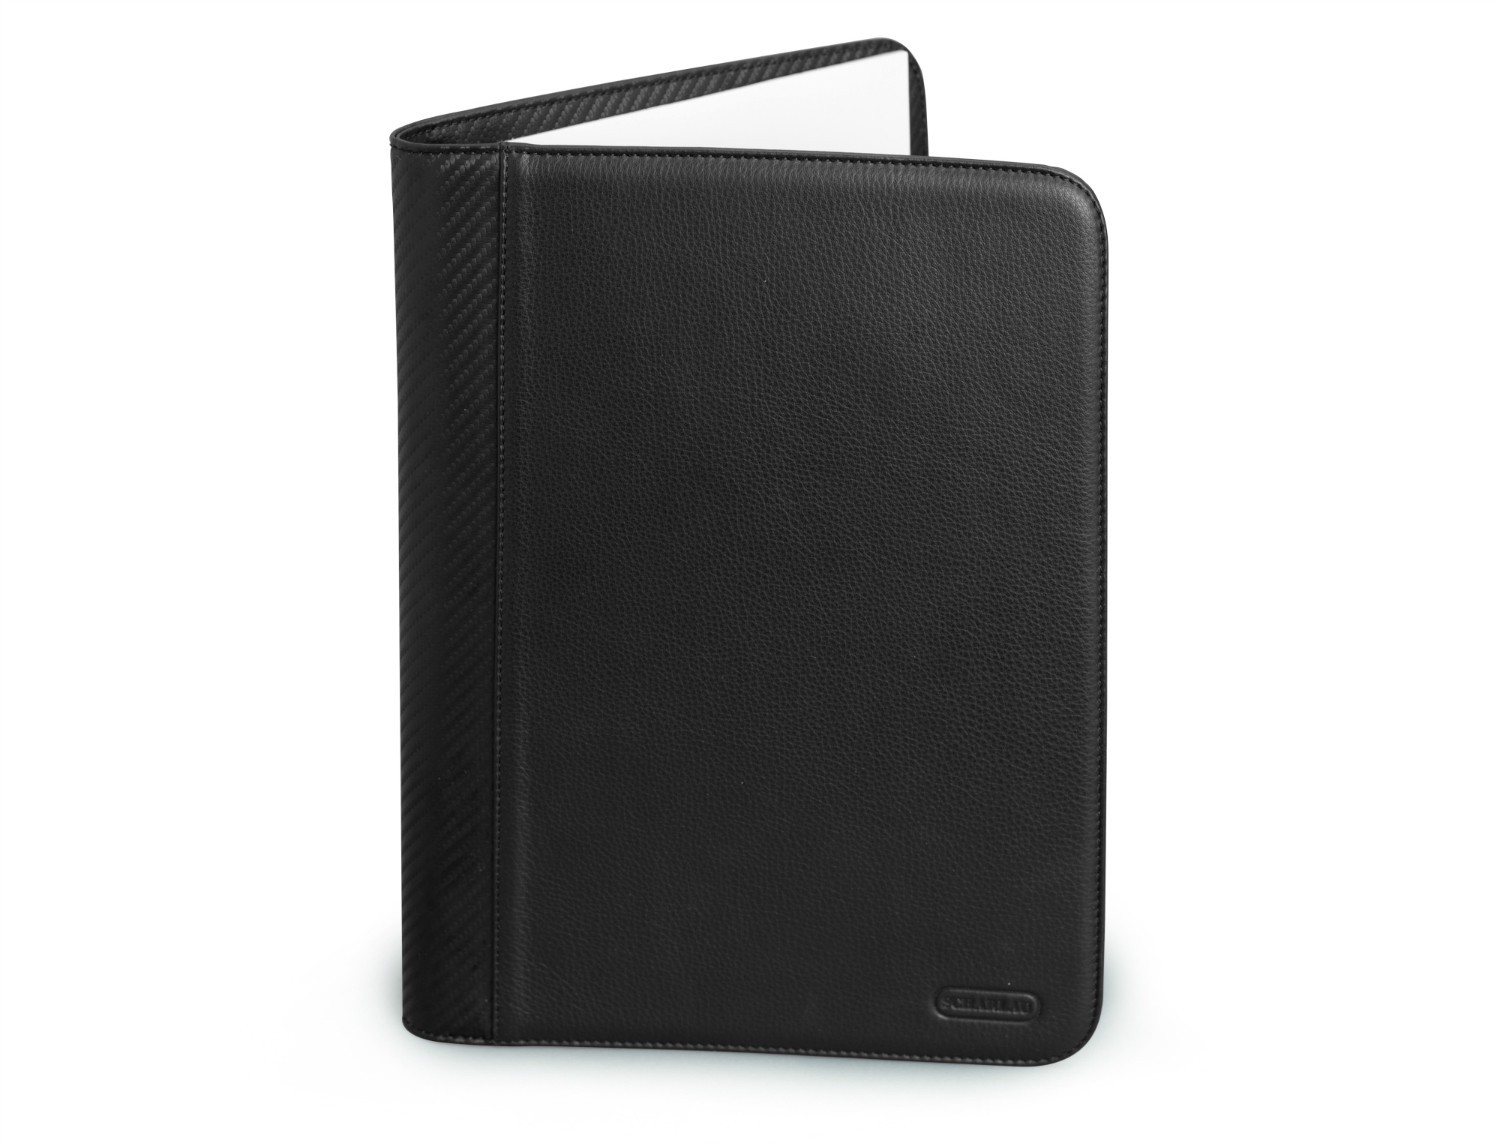 Leather letterpad A4 for business meetings with tablet compartment front